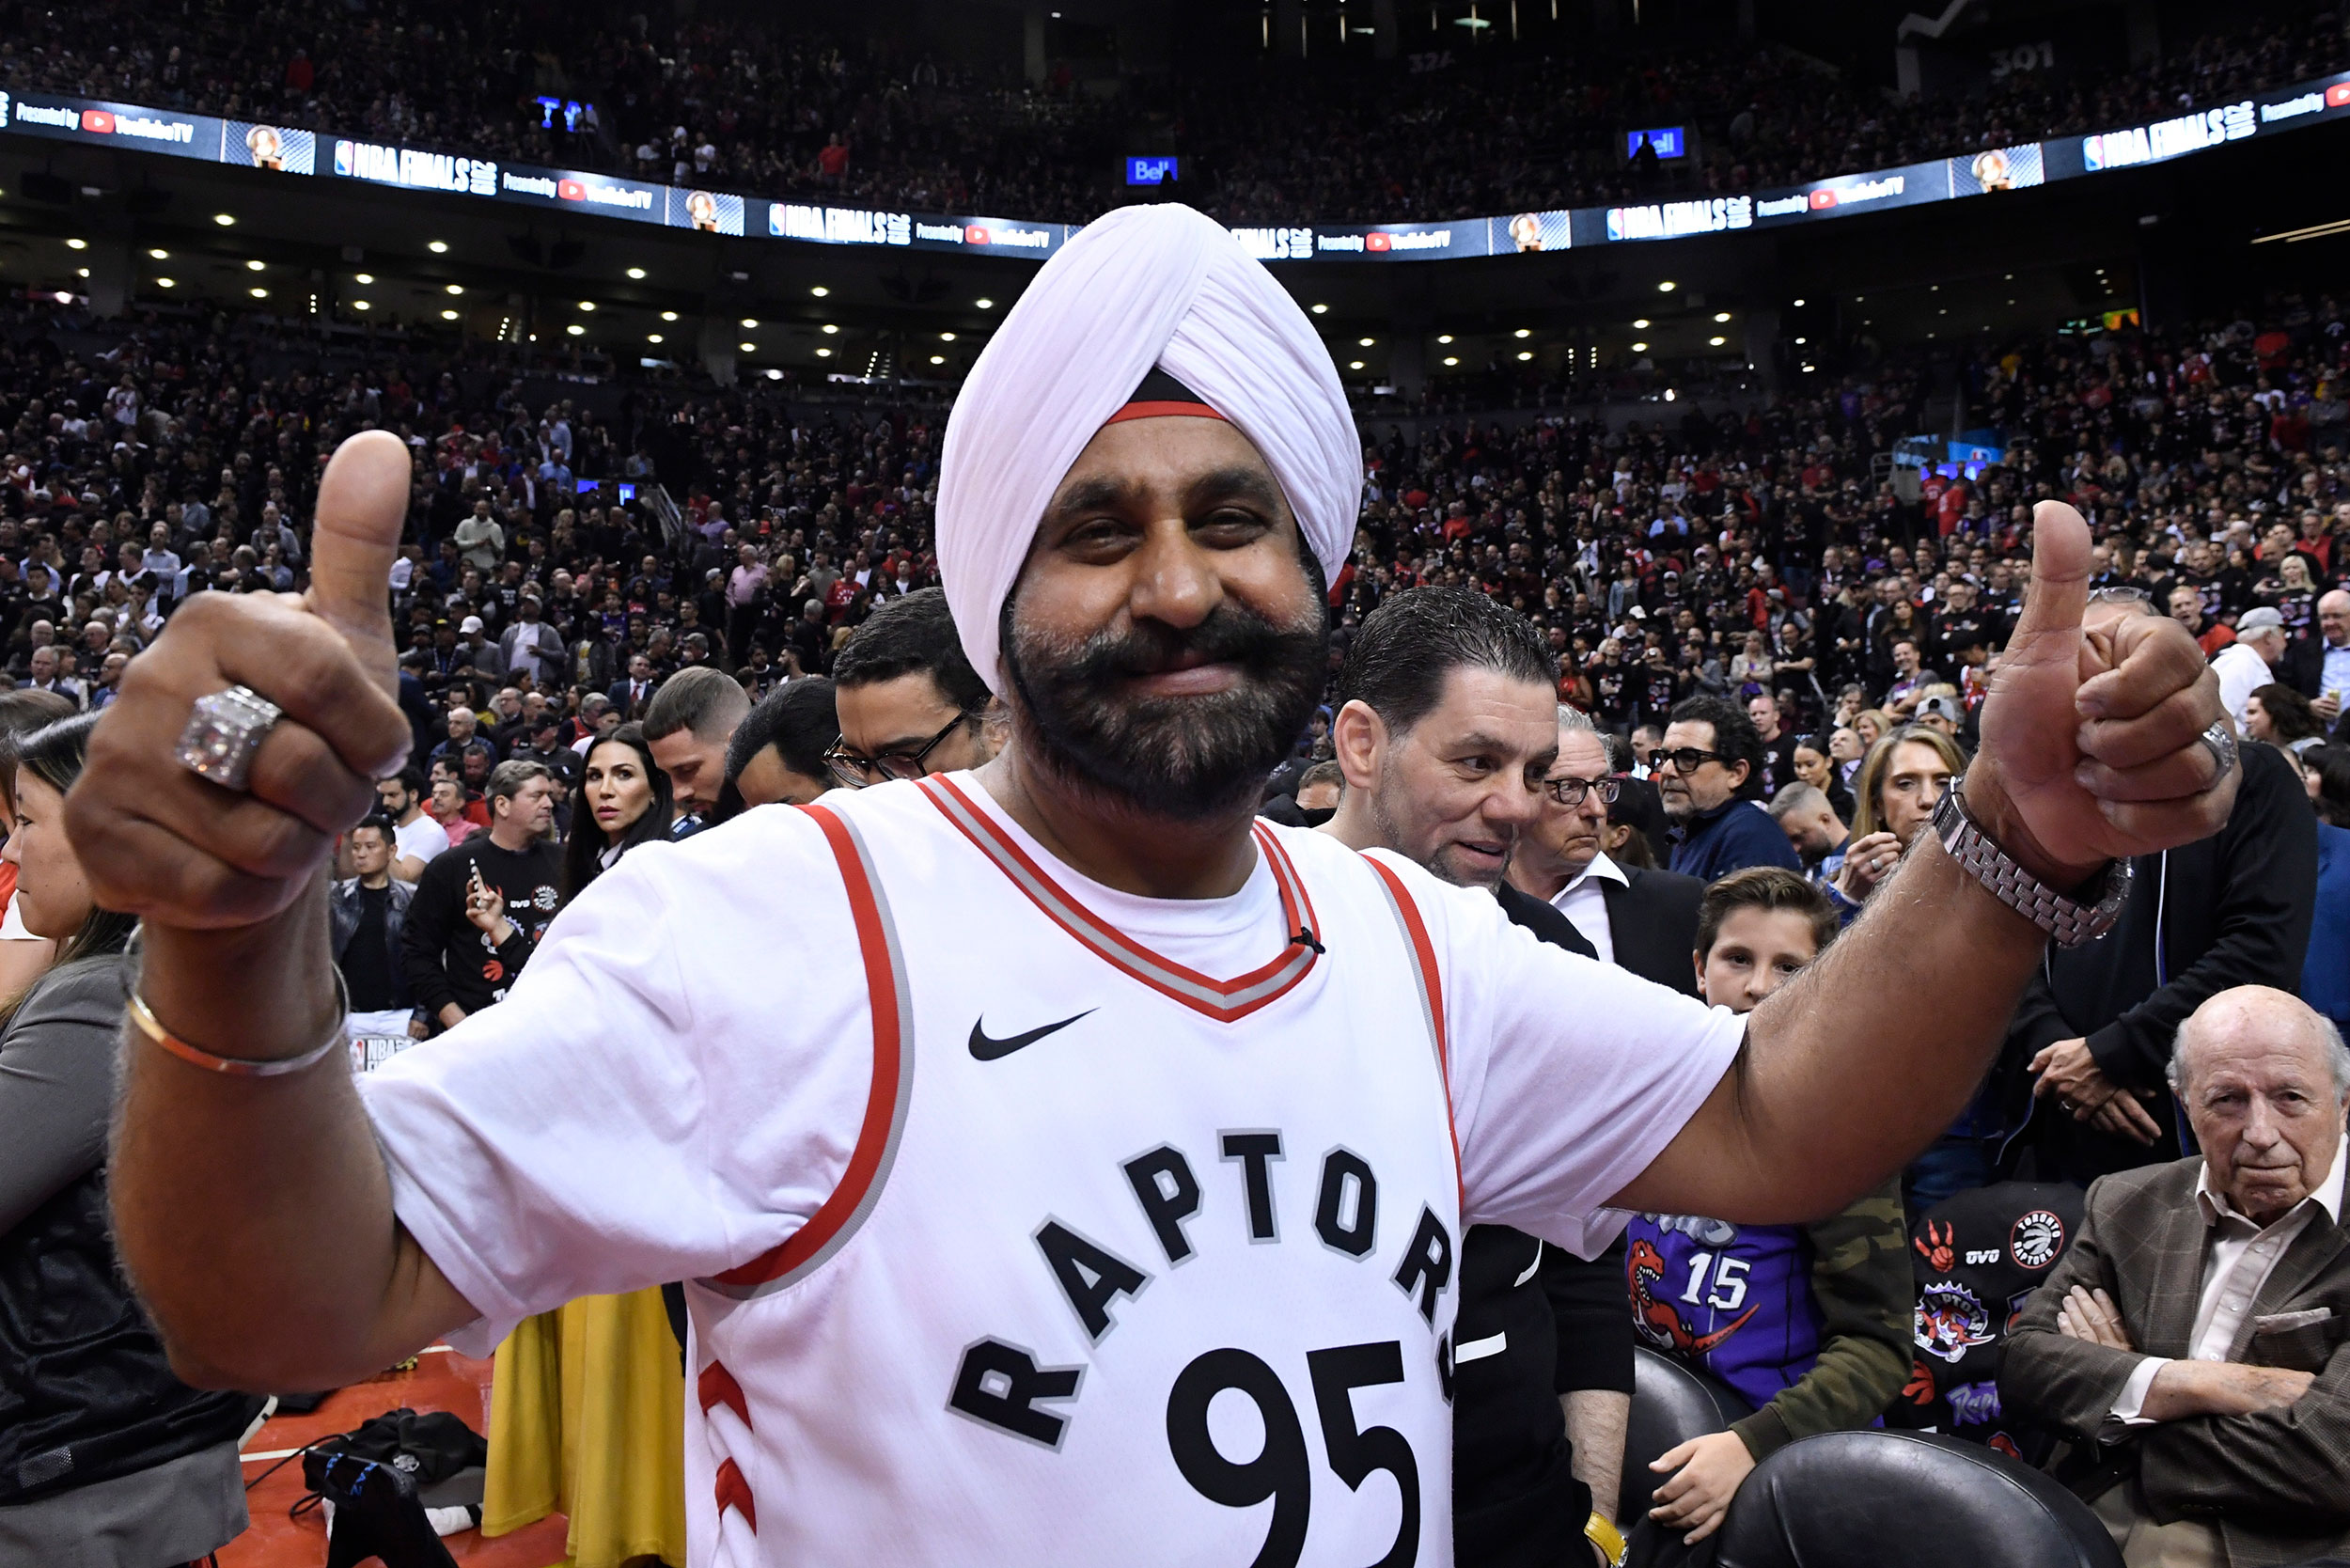 Toronto Raptors superfan Nav Bhatia to be in new gallery at the Basketball Hall of Fame